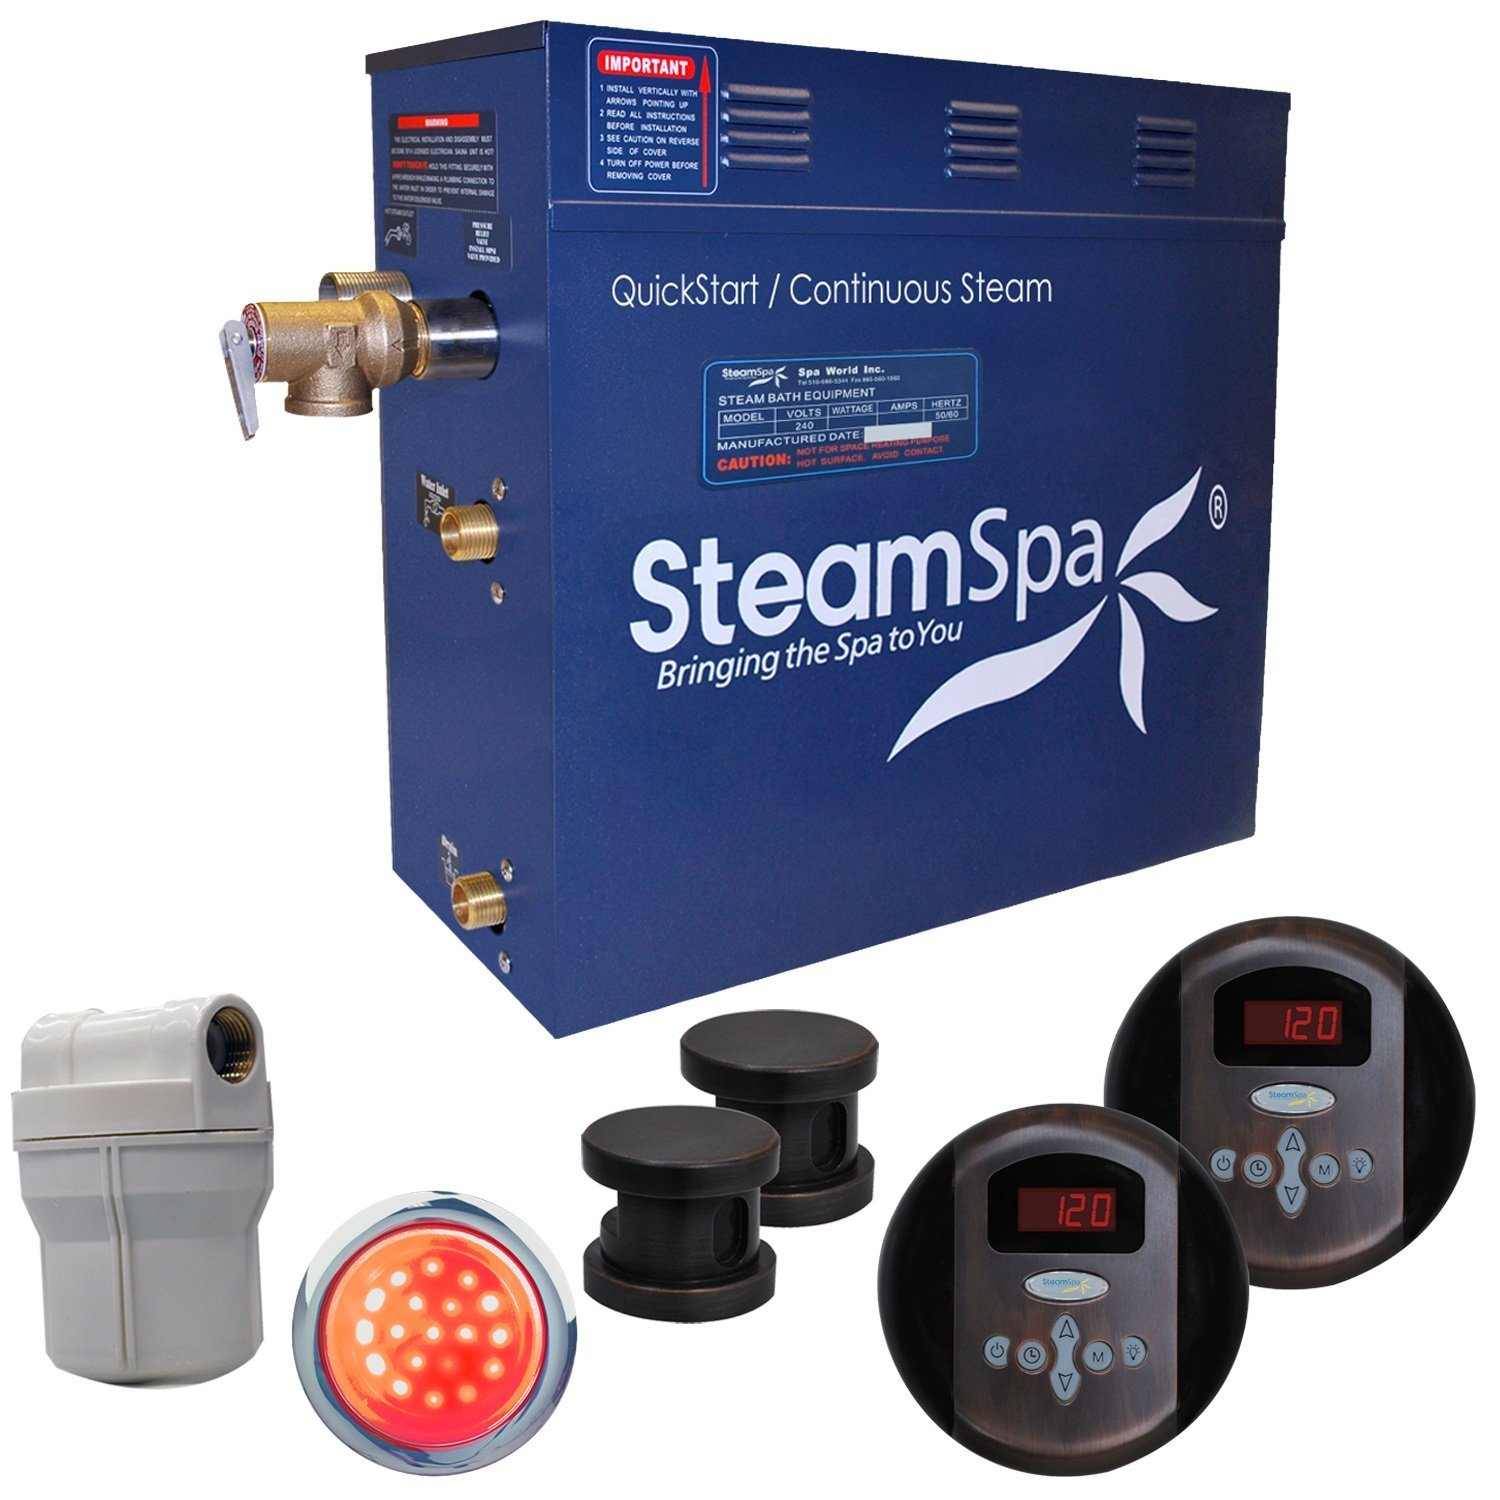 Steam Spa RY1200OB Royal 12 KW Quick Start Acu-Steam Bath Generator Package, Oil Rubbed Bronze